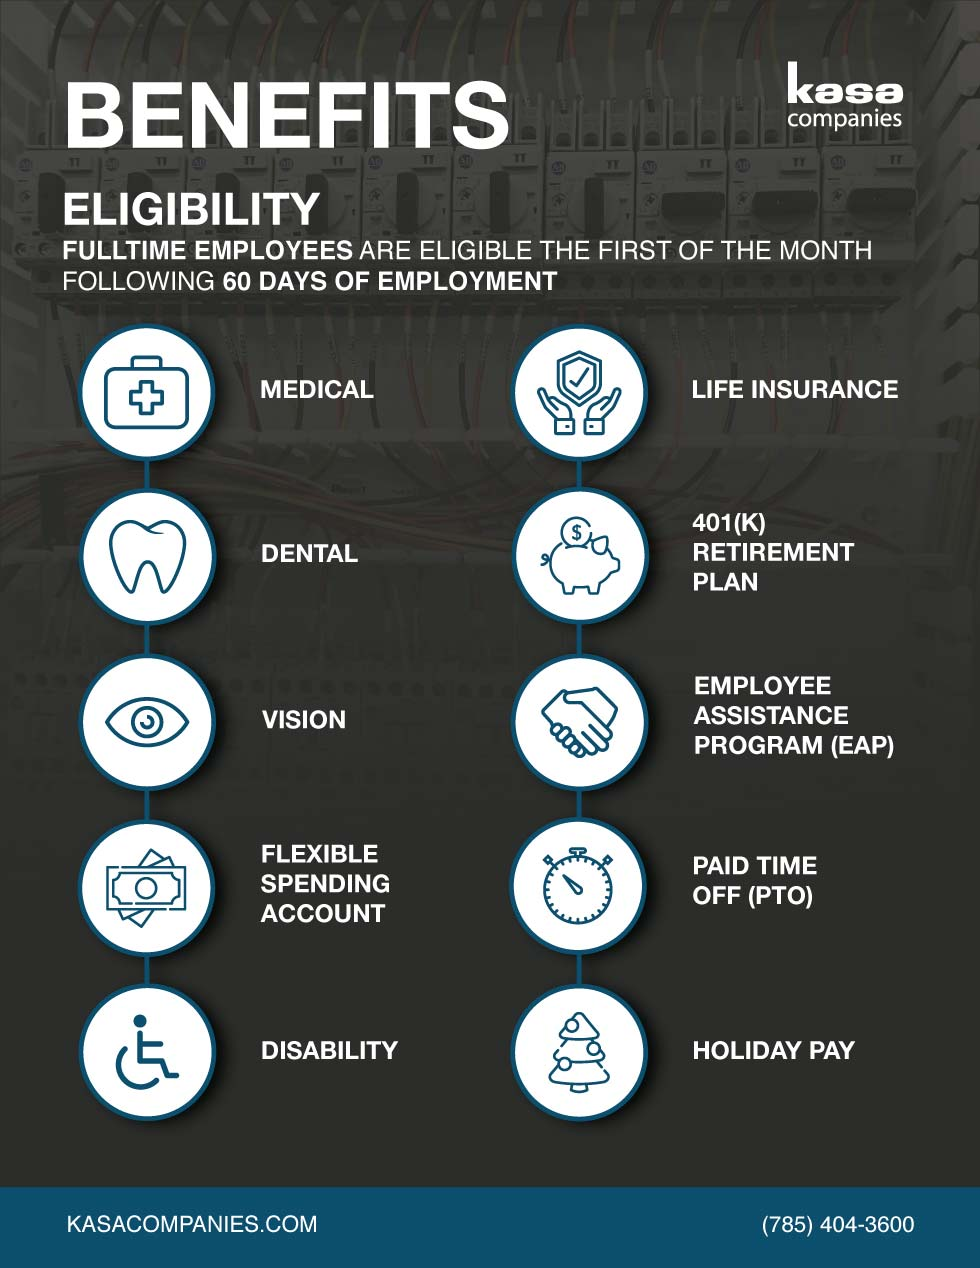 Overview of Benefits